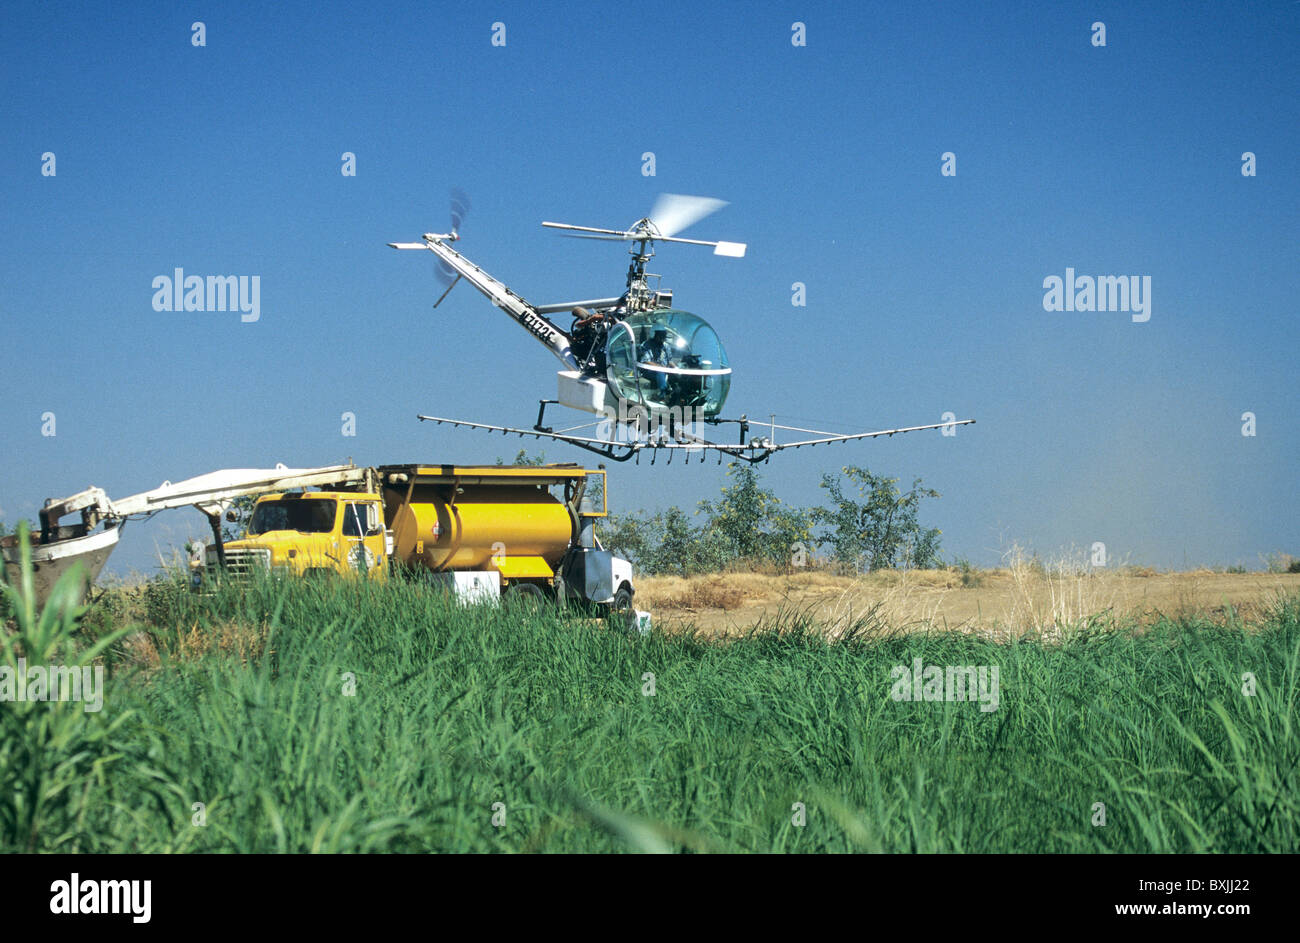 Rice field, helicopter departing from truck mounted service platform, - Stock Image